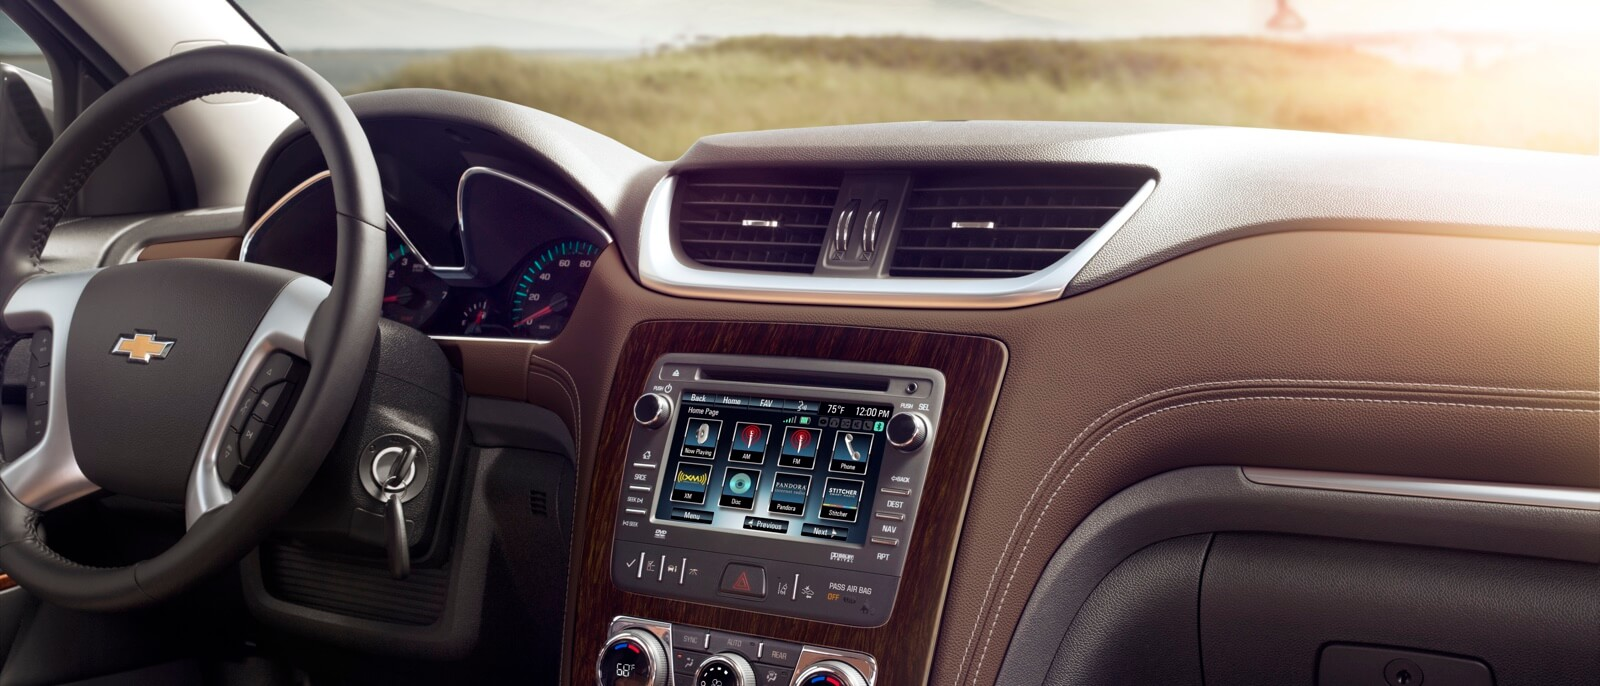 2017 Chevy Traverse interior features